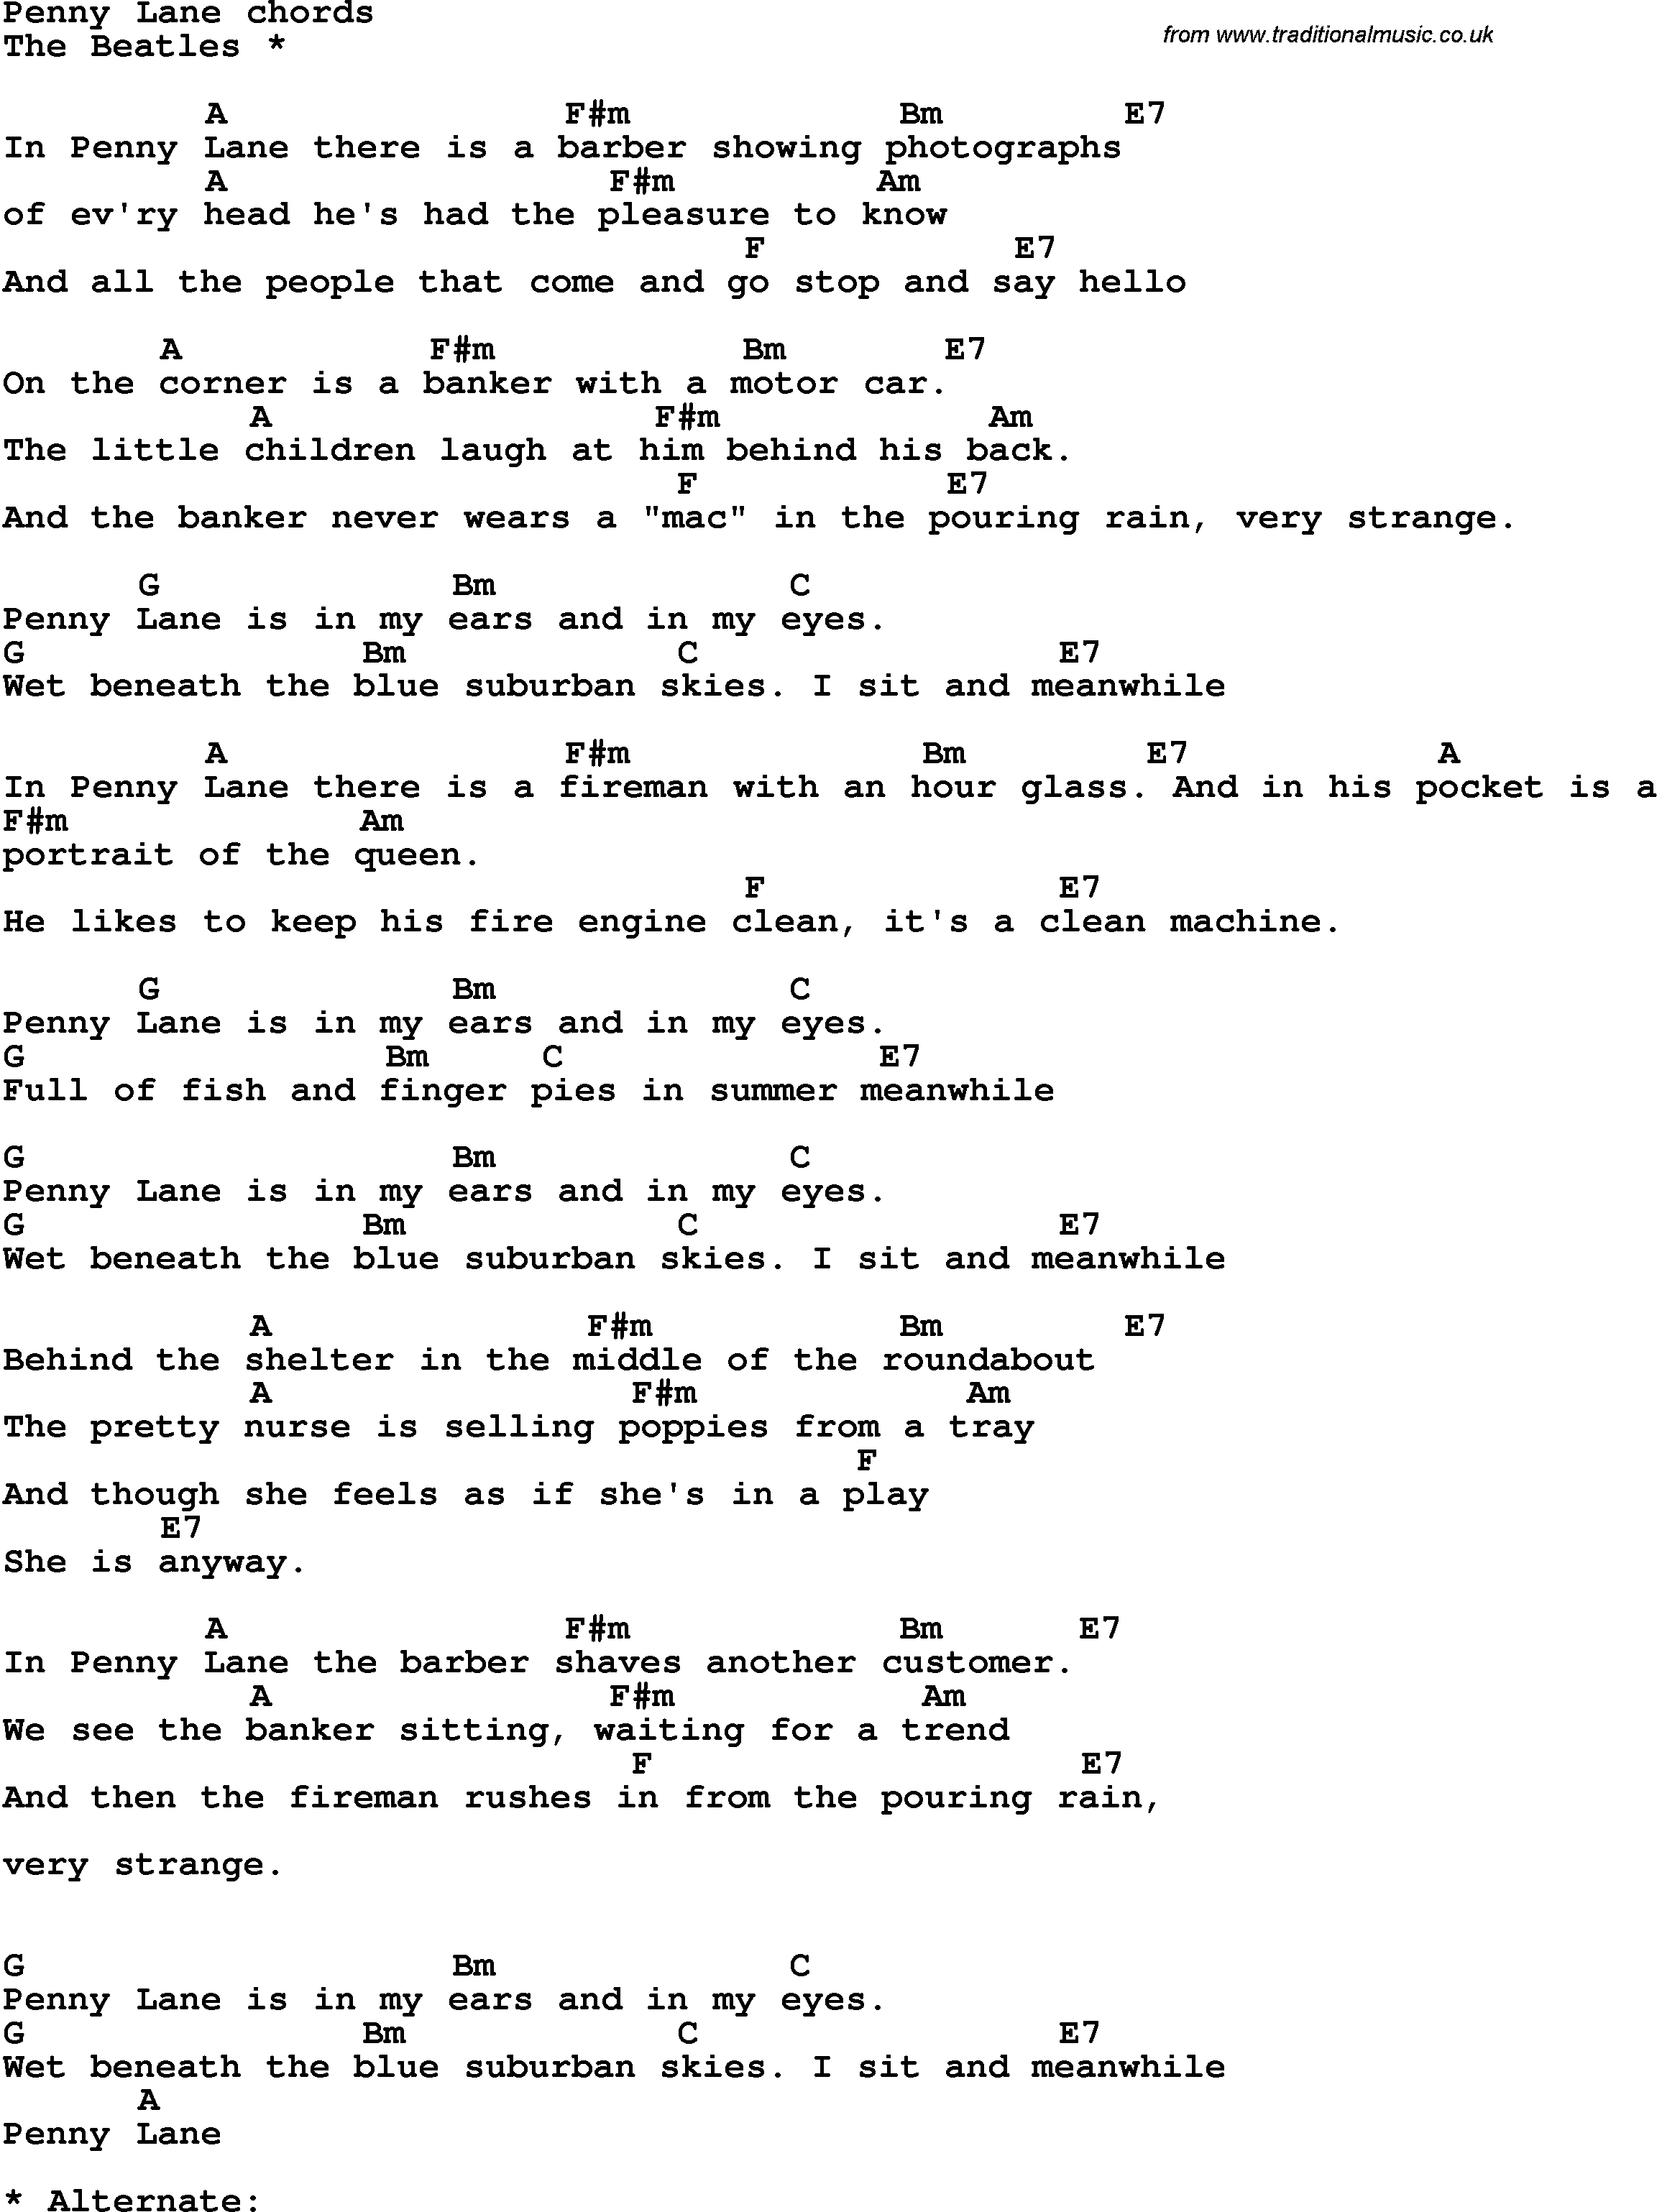 Song Lyrics With Guitar Chords For Penny Lane The Beatles